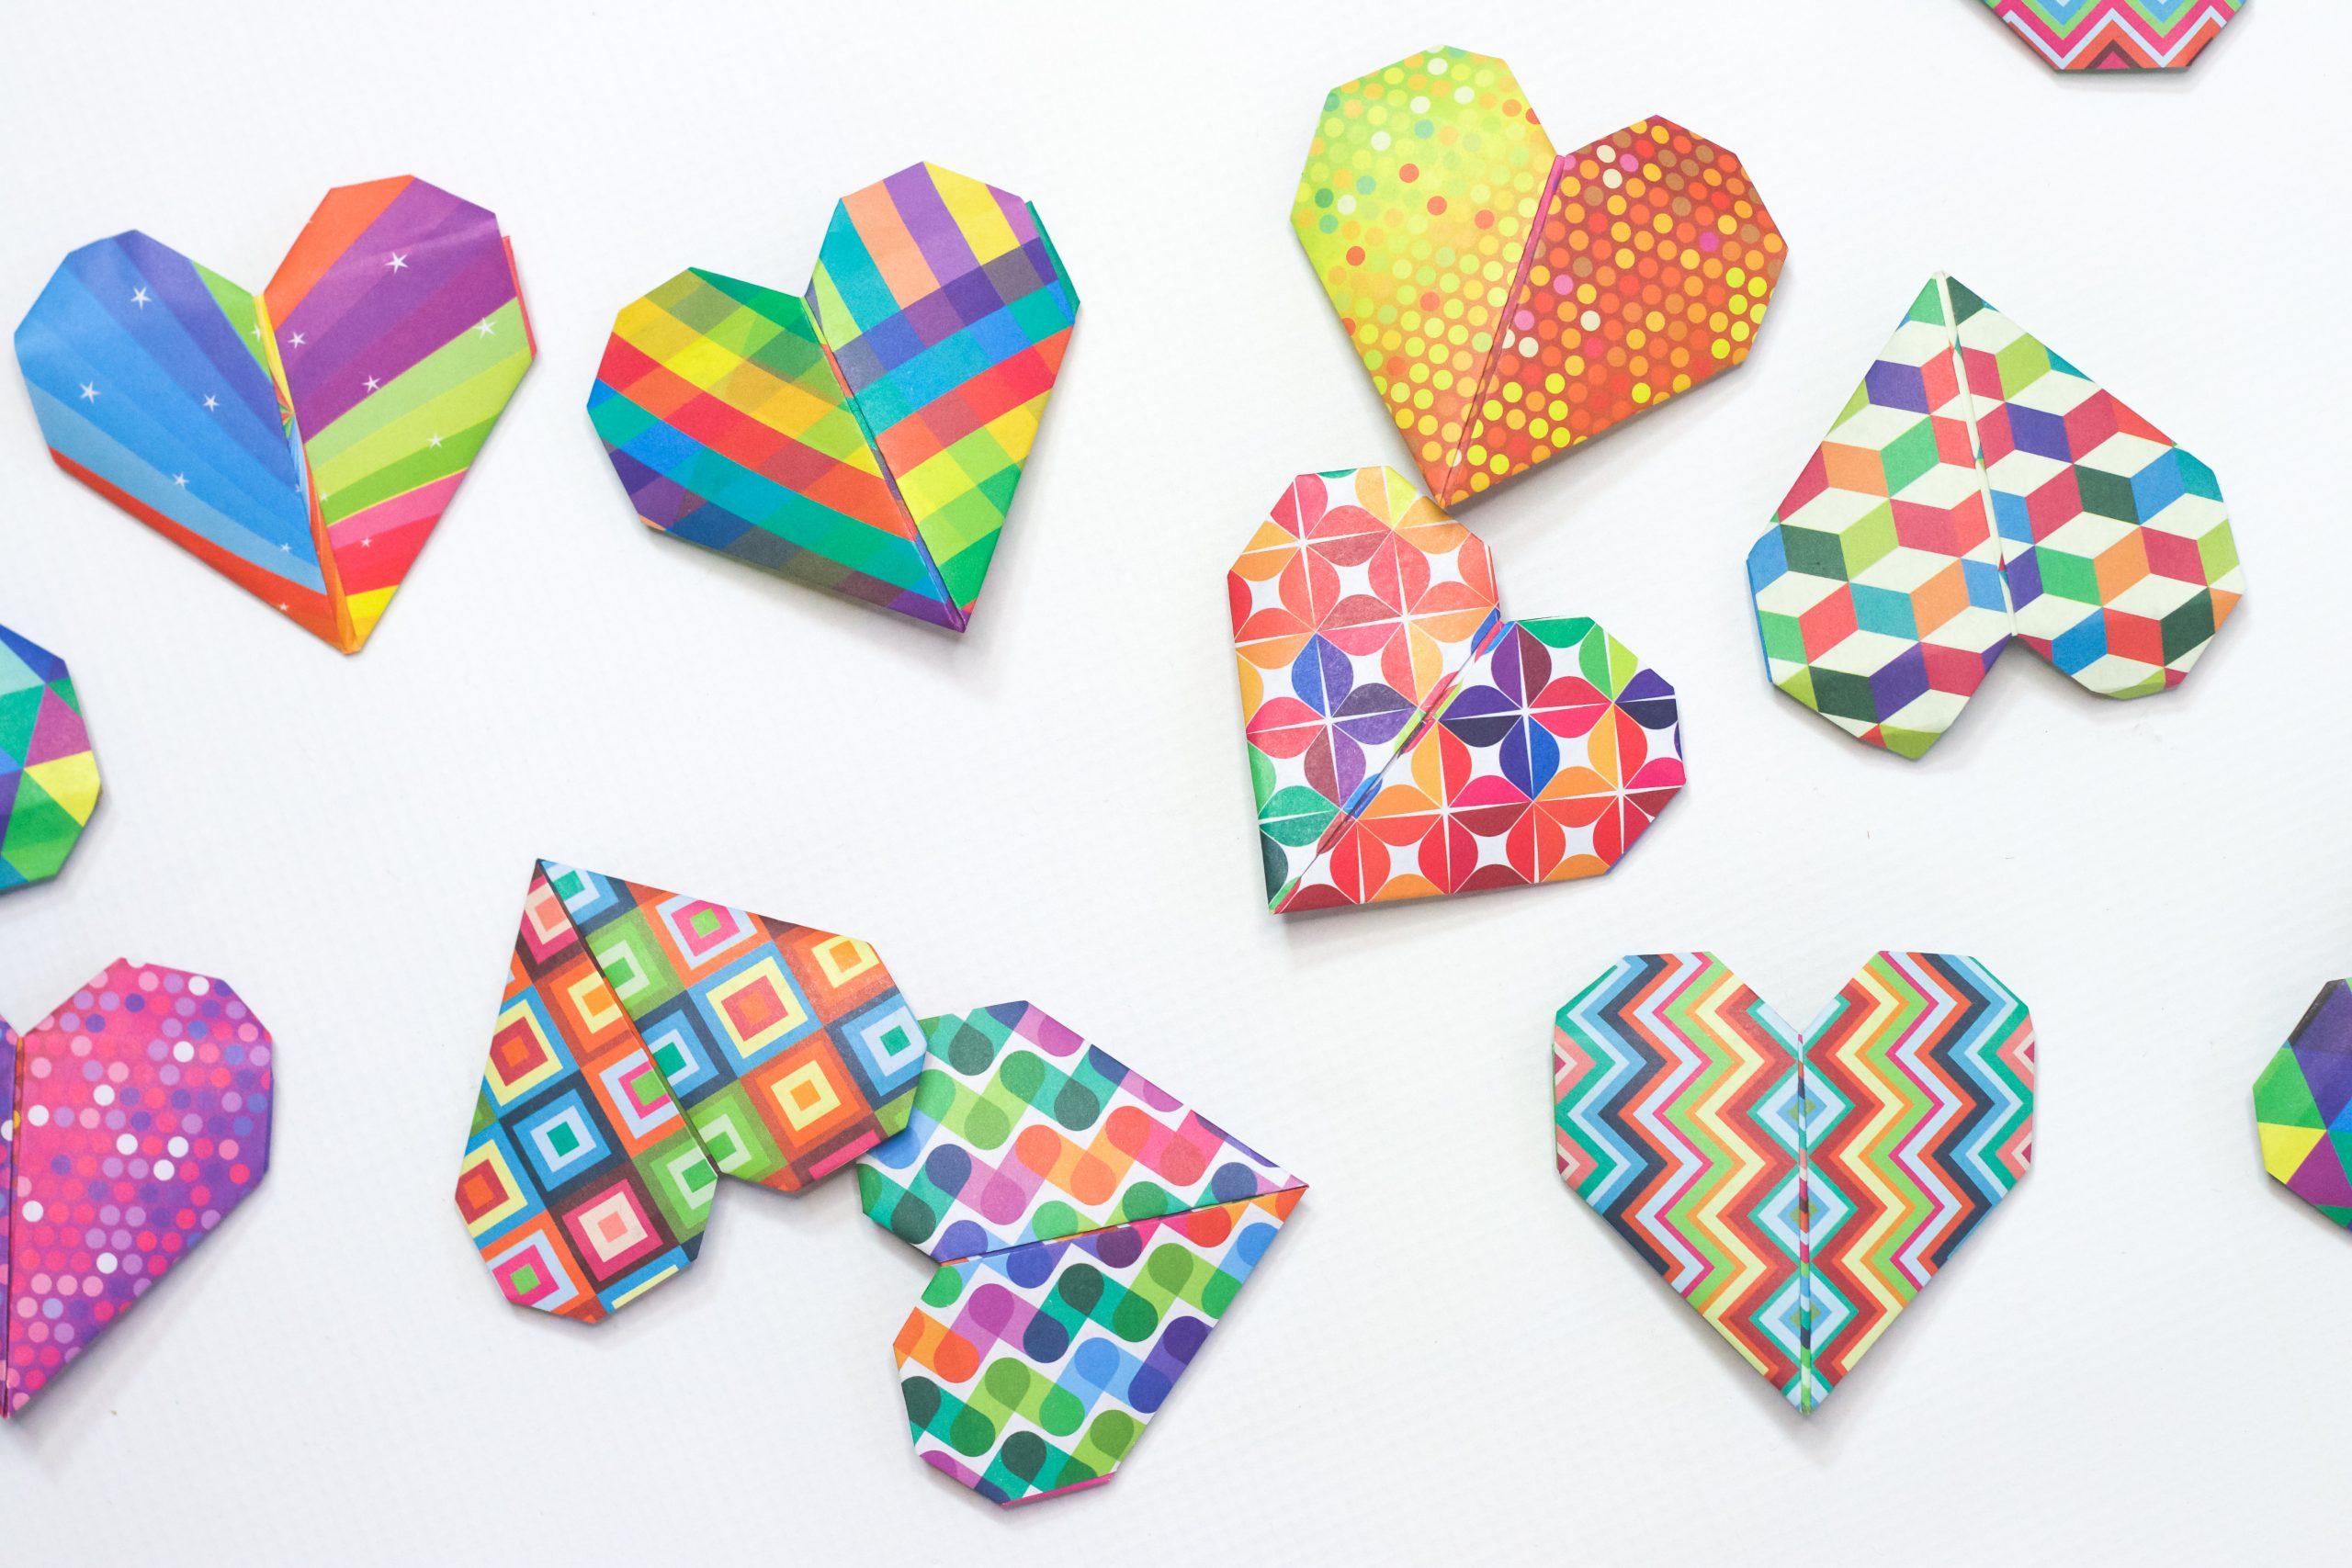 How To Make An Origami Heart - Folding Instructions - Origami Guide | 1707x2560